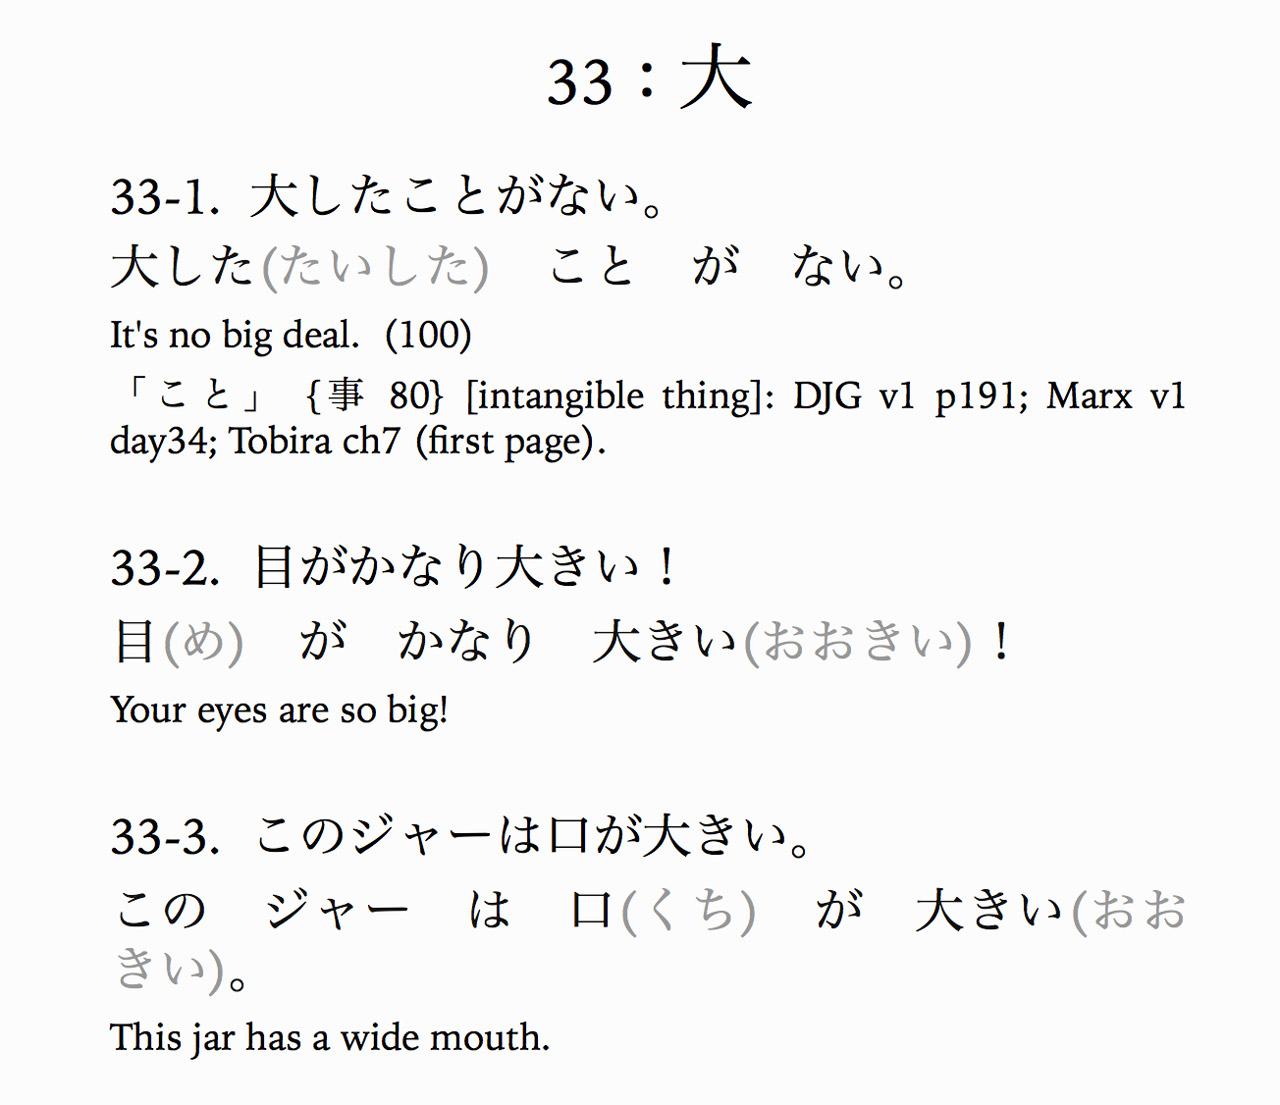 comparison of pages from kanji learners course